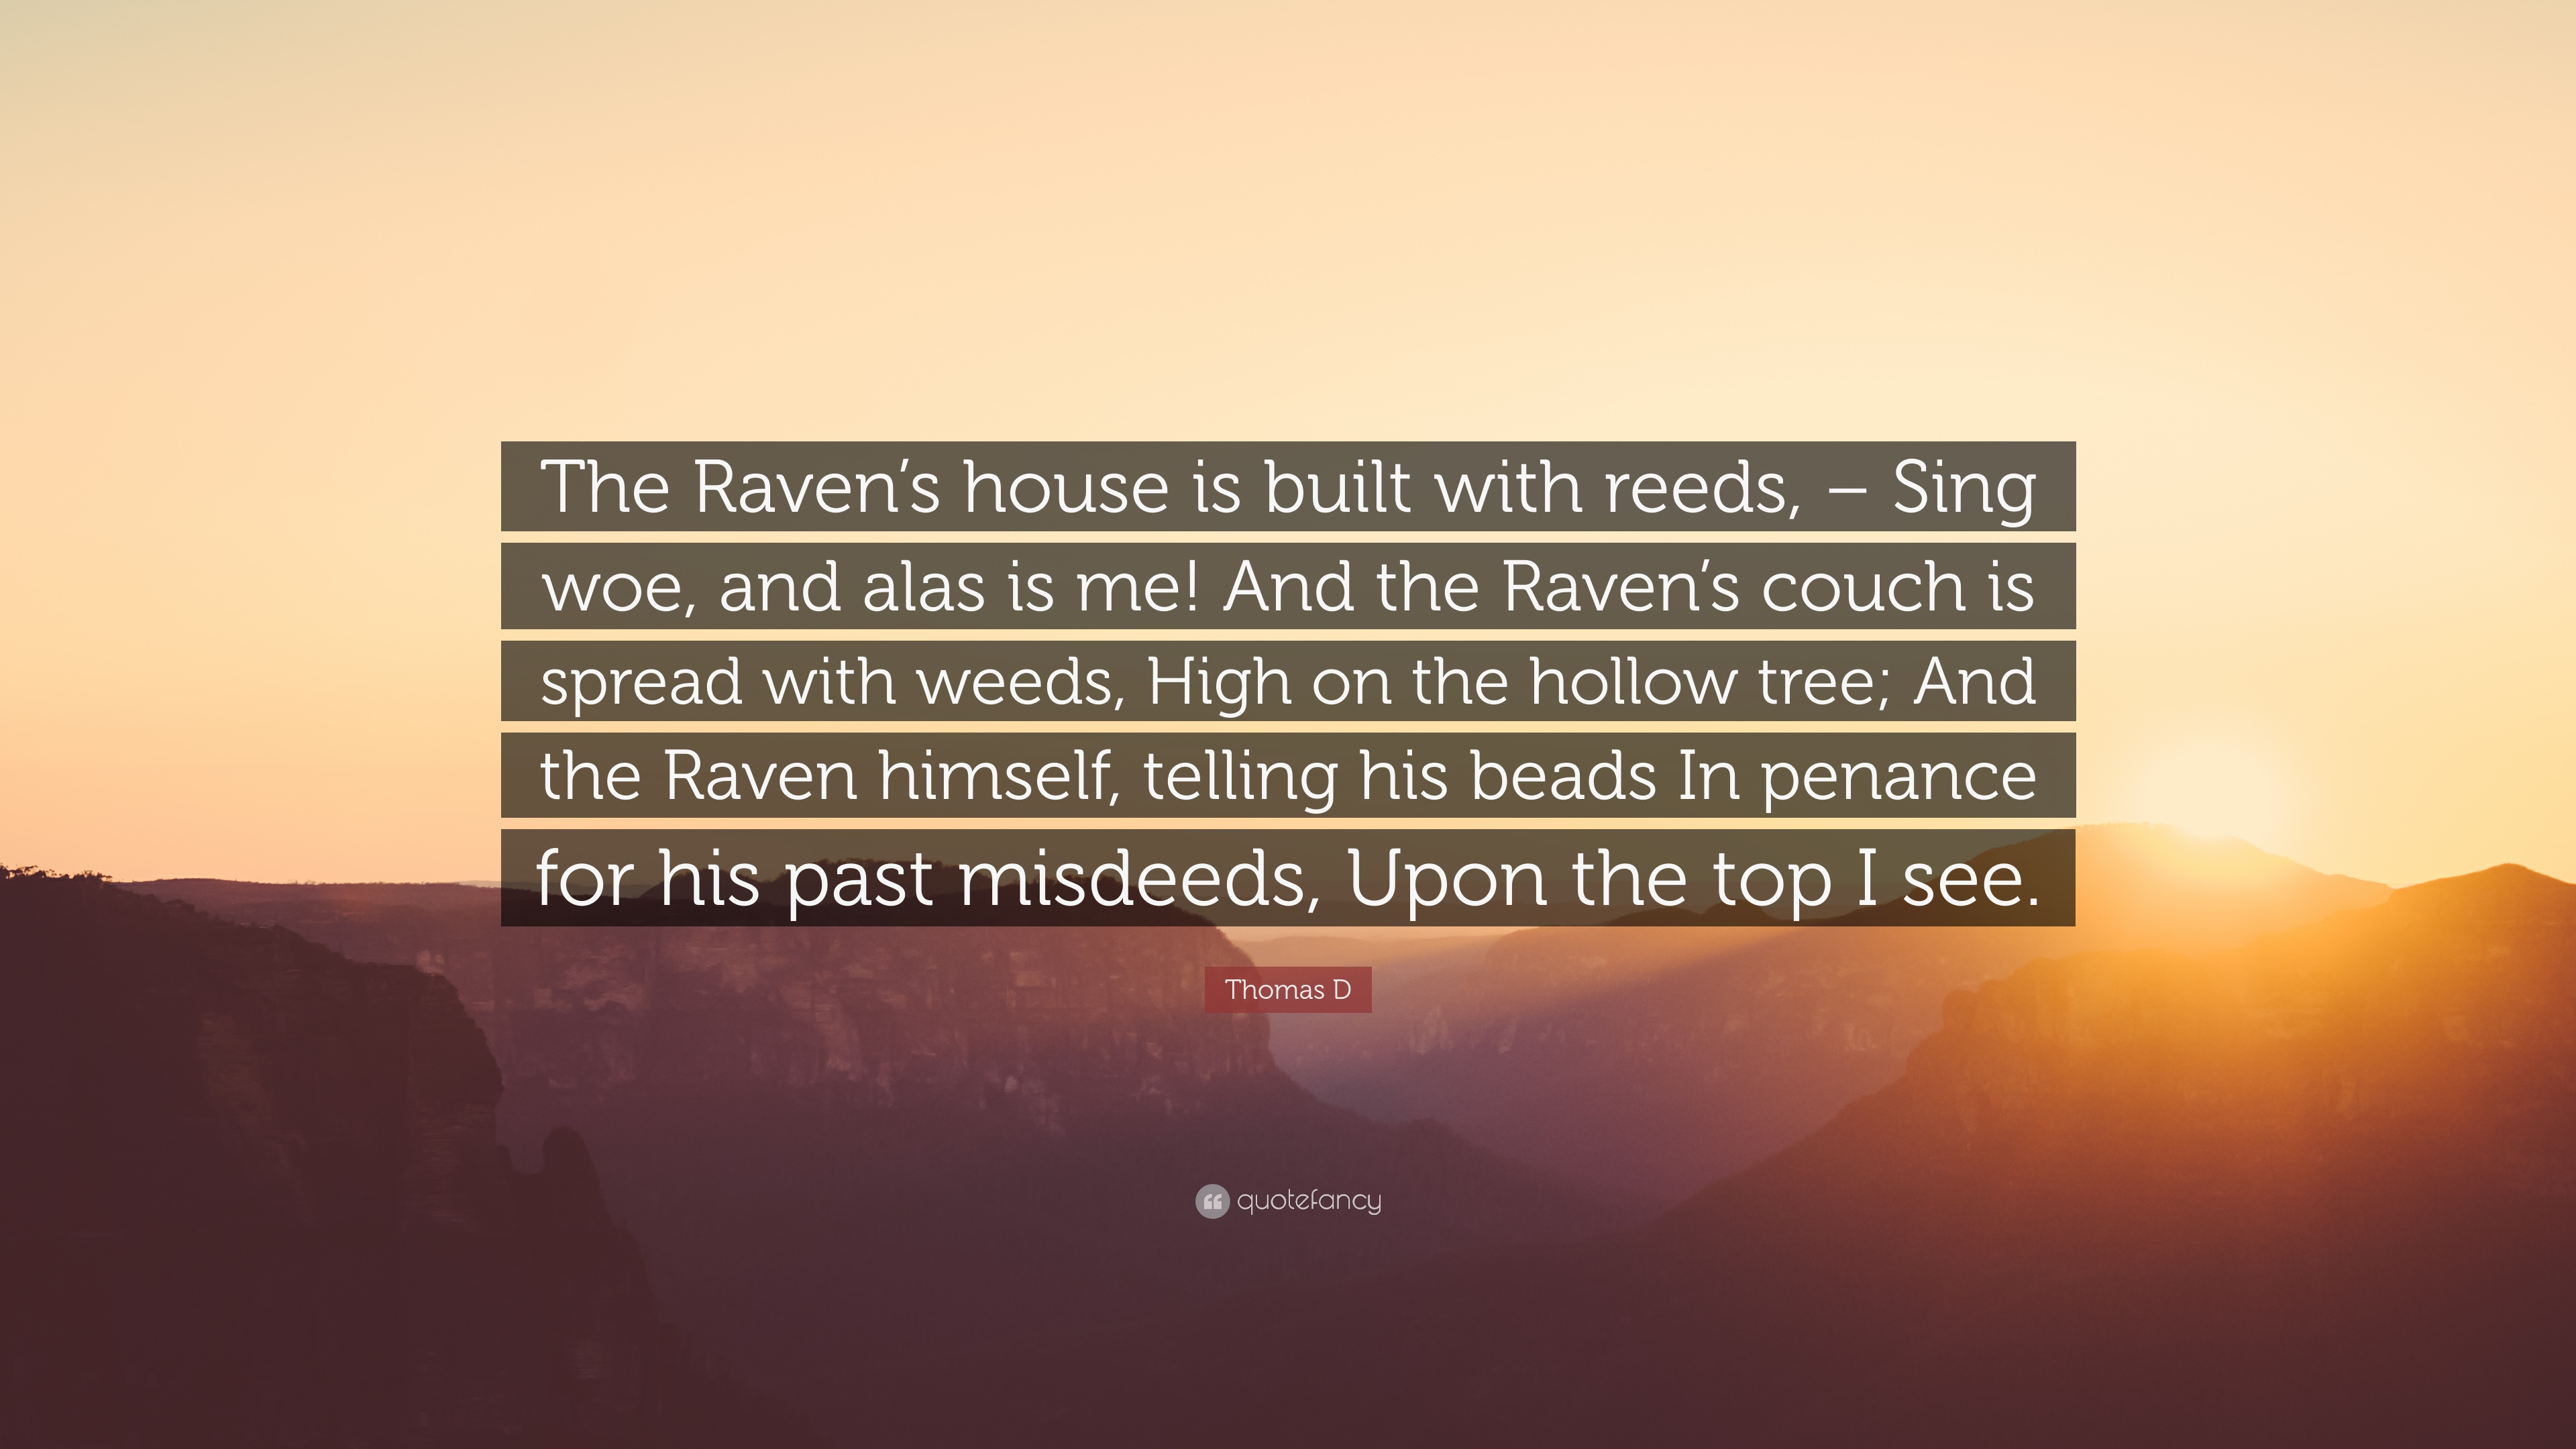 thomas d quote u201cthe raven u0027s house is built with reeds u2013 sing woe